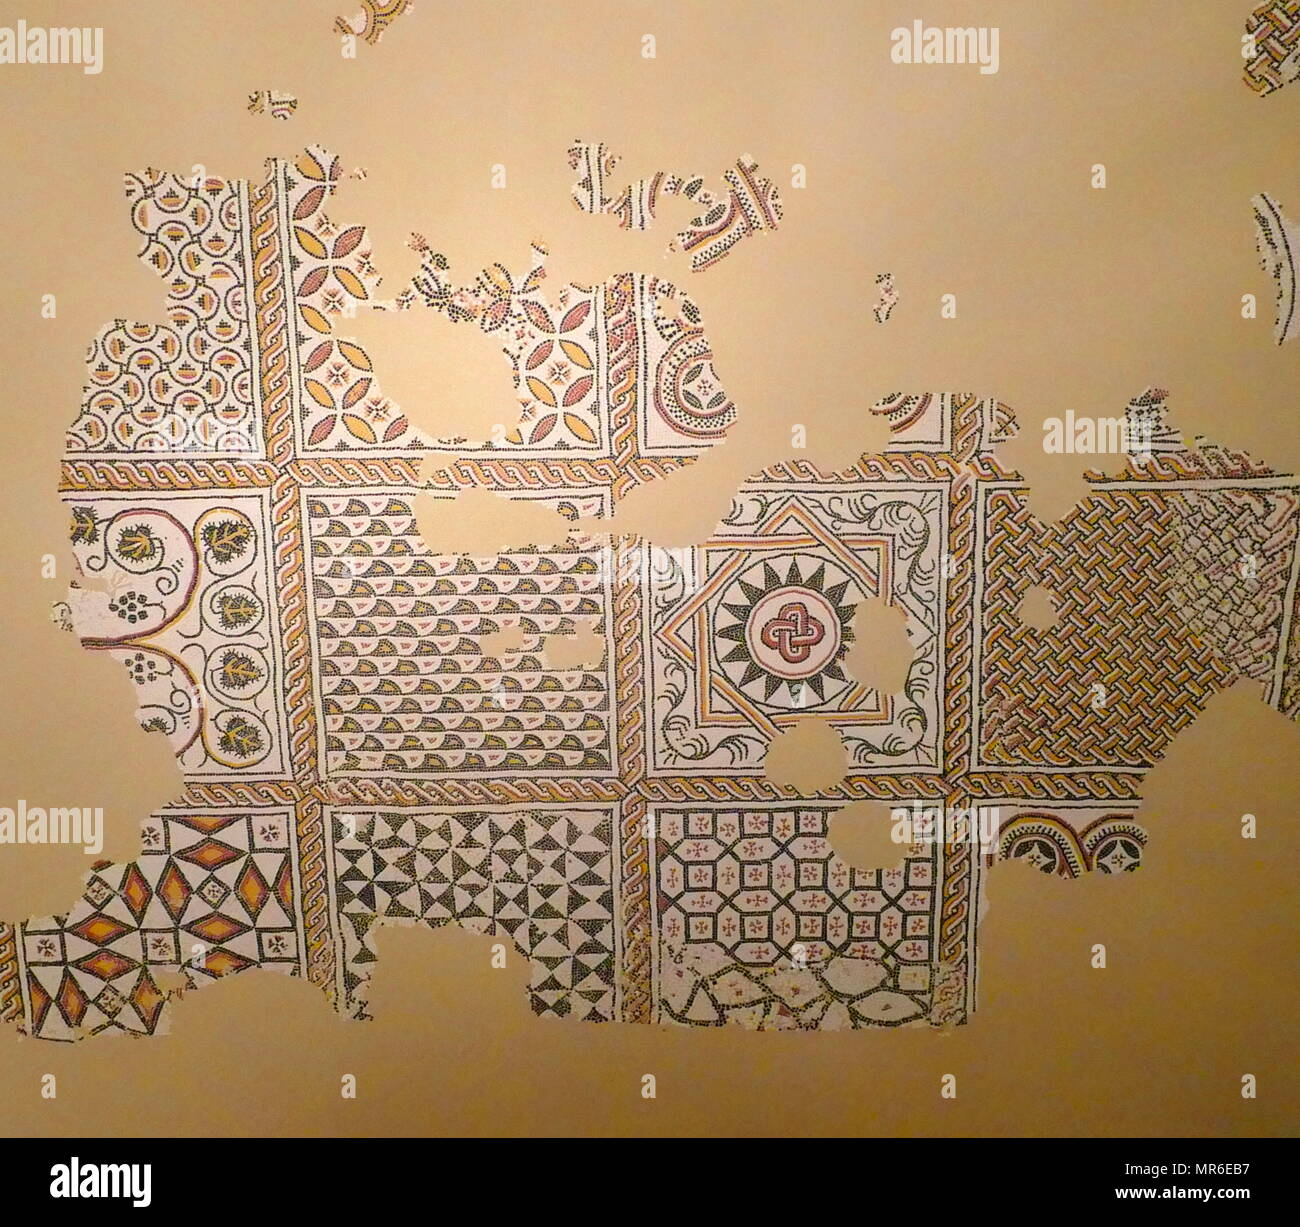 5th century Roman mosaic from the floor of the bishop's house in Geneva, Switzerland - Stock Image